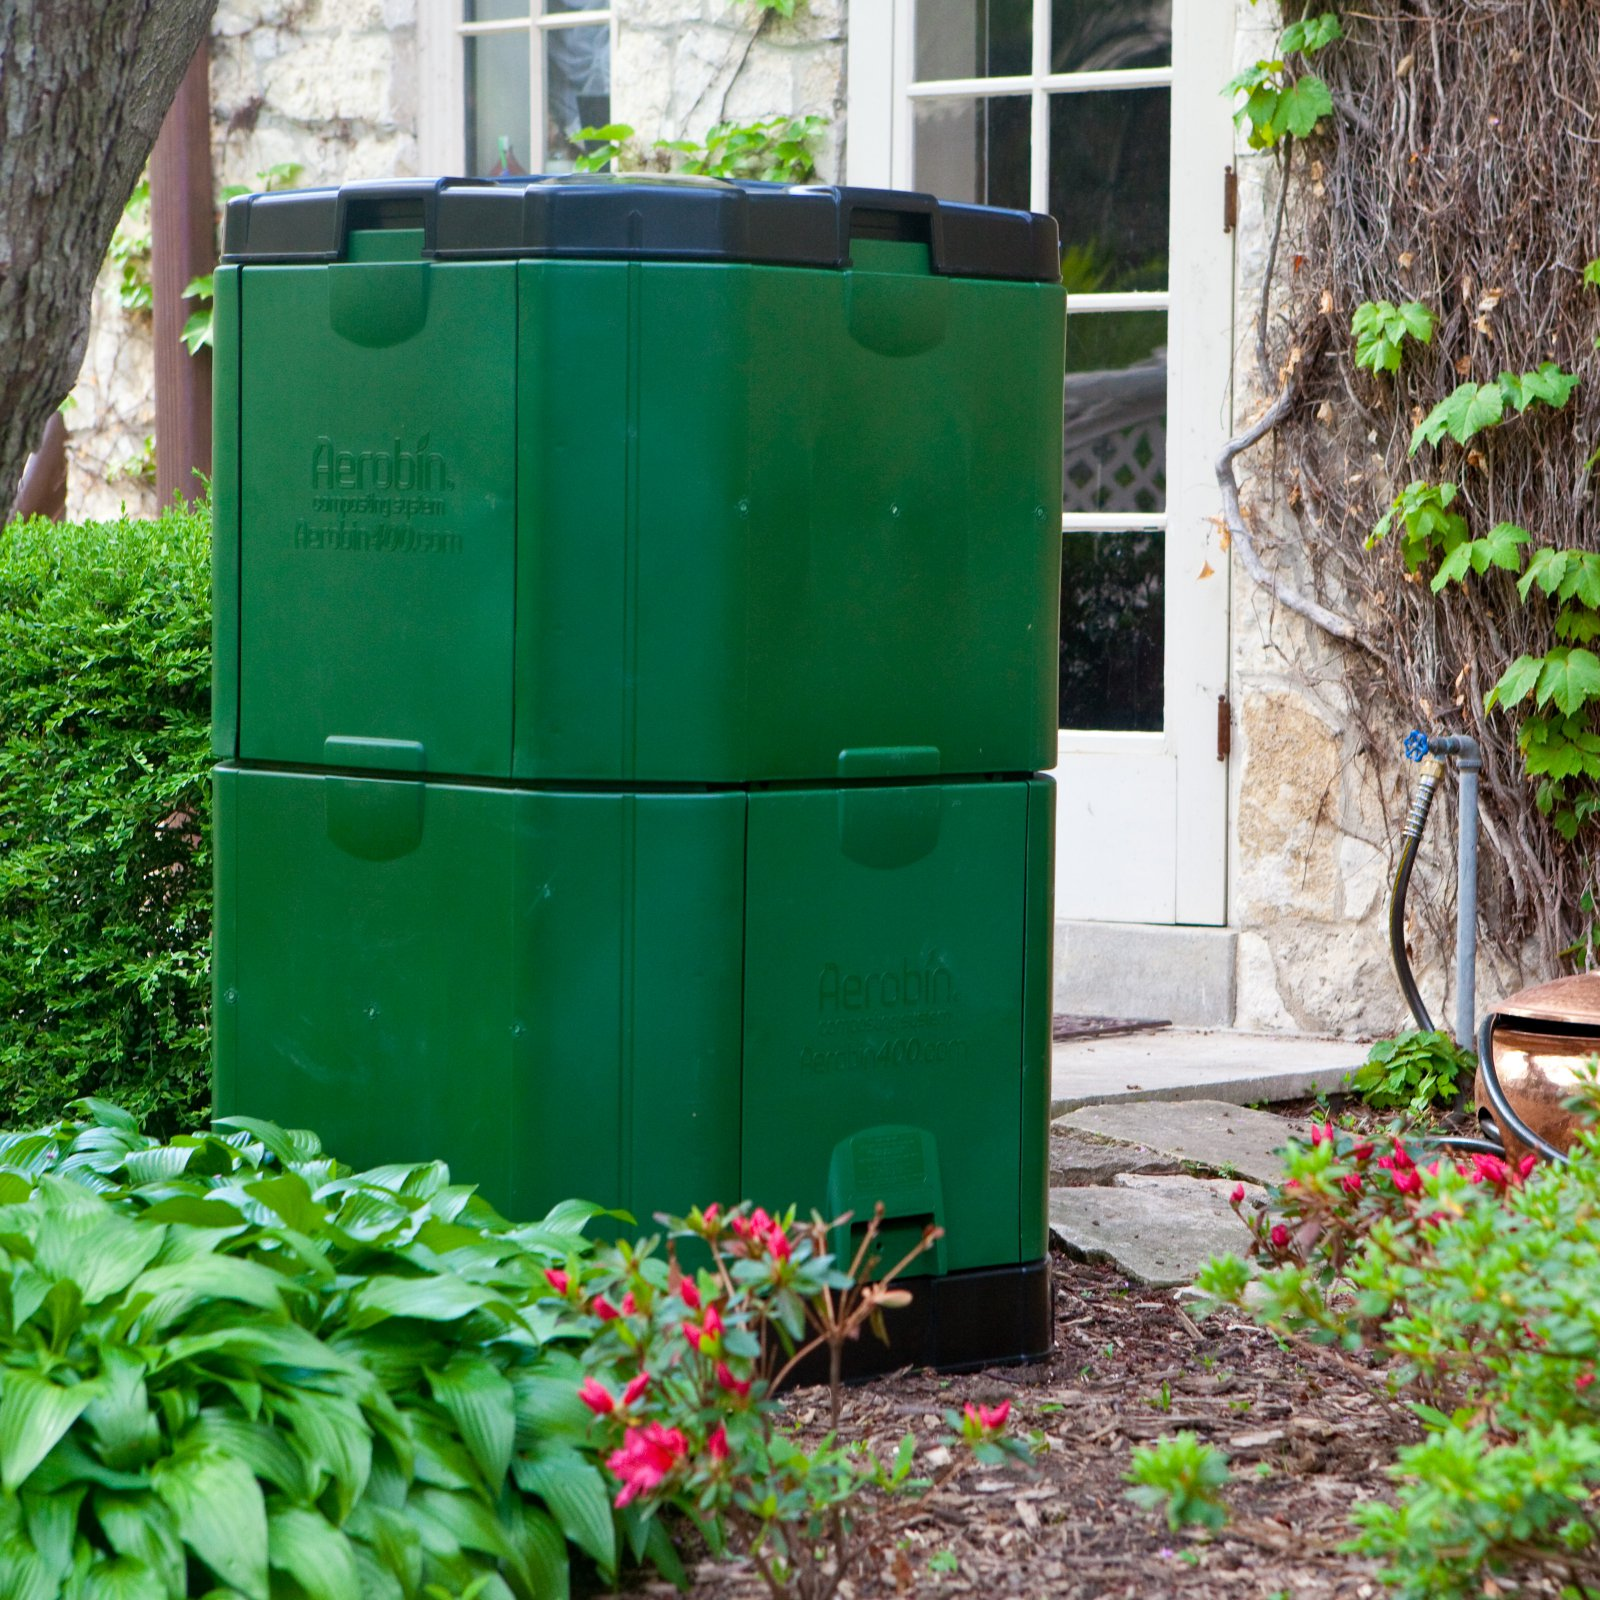 Exaco 123 Gallon Aerobin 400 Insulated Compost Bin